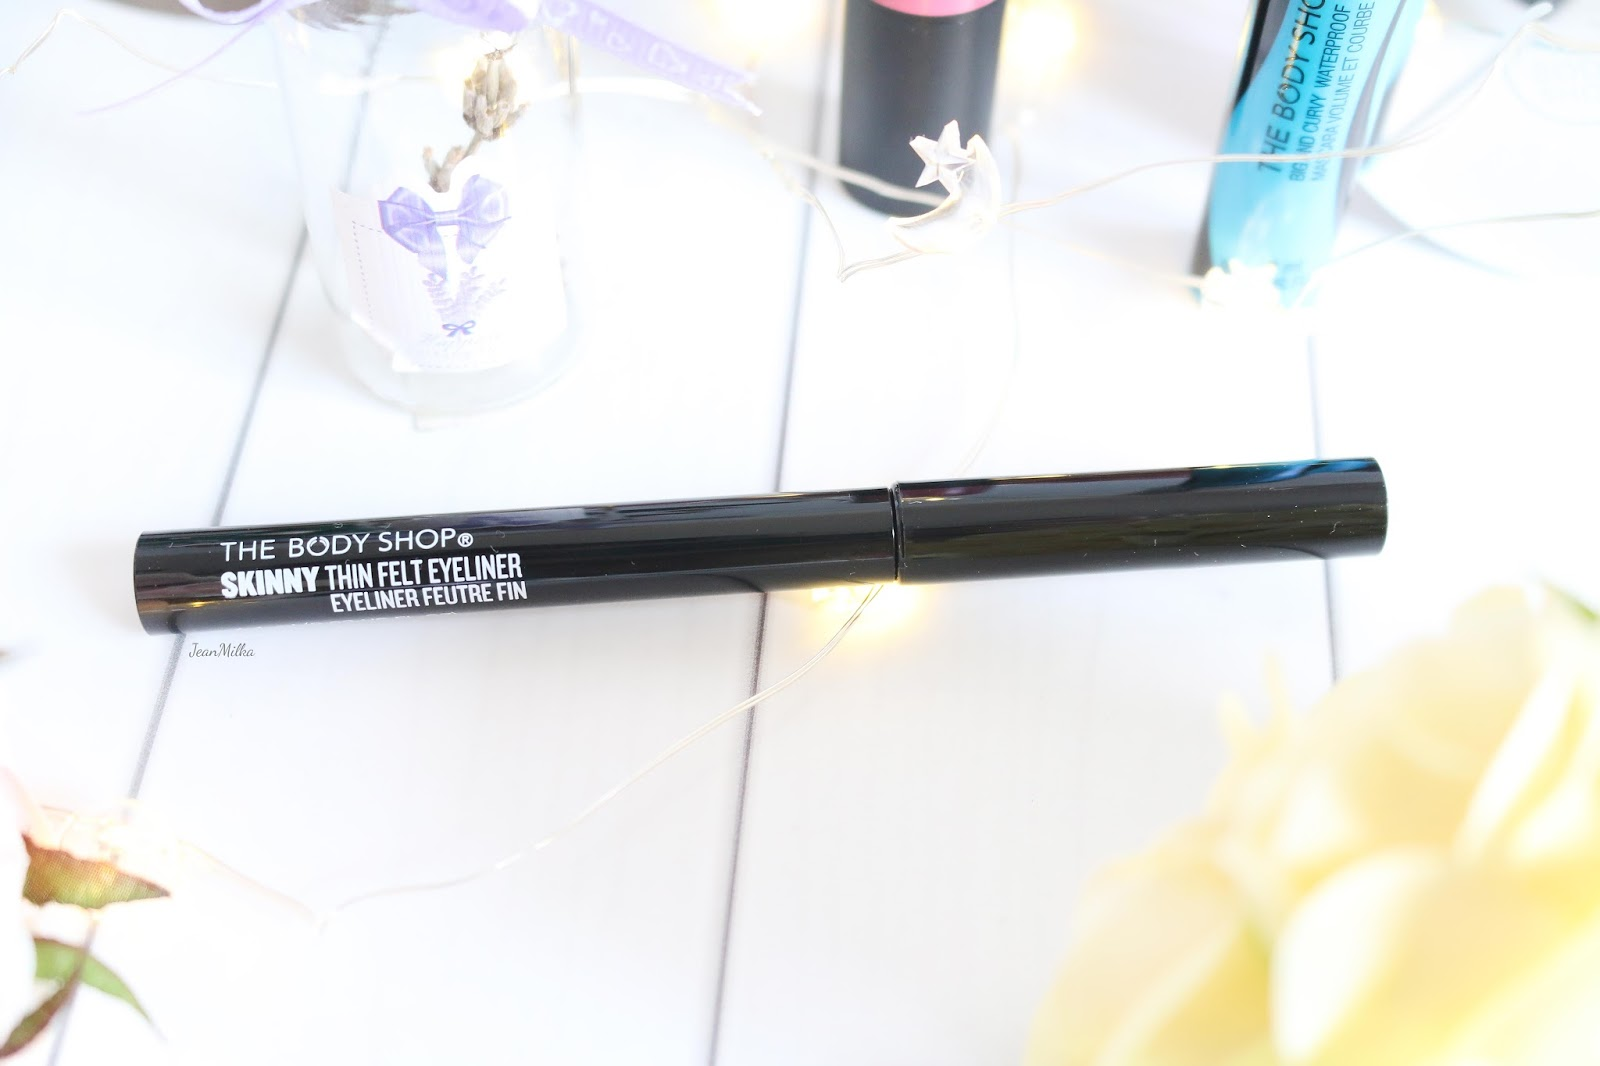 the body shop, body shop, body shop indonesia, the body shop indonesia, makeup natal, makeup, the body shop makeup, makeup collection, christmas makeup, the body shop makeup review, eyeliner, skinny thin eyeliner